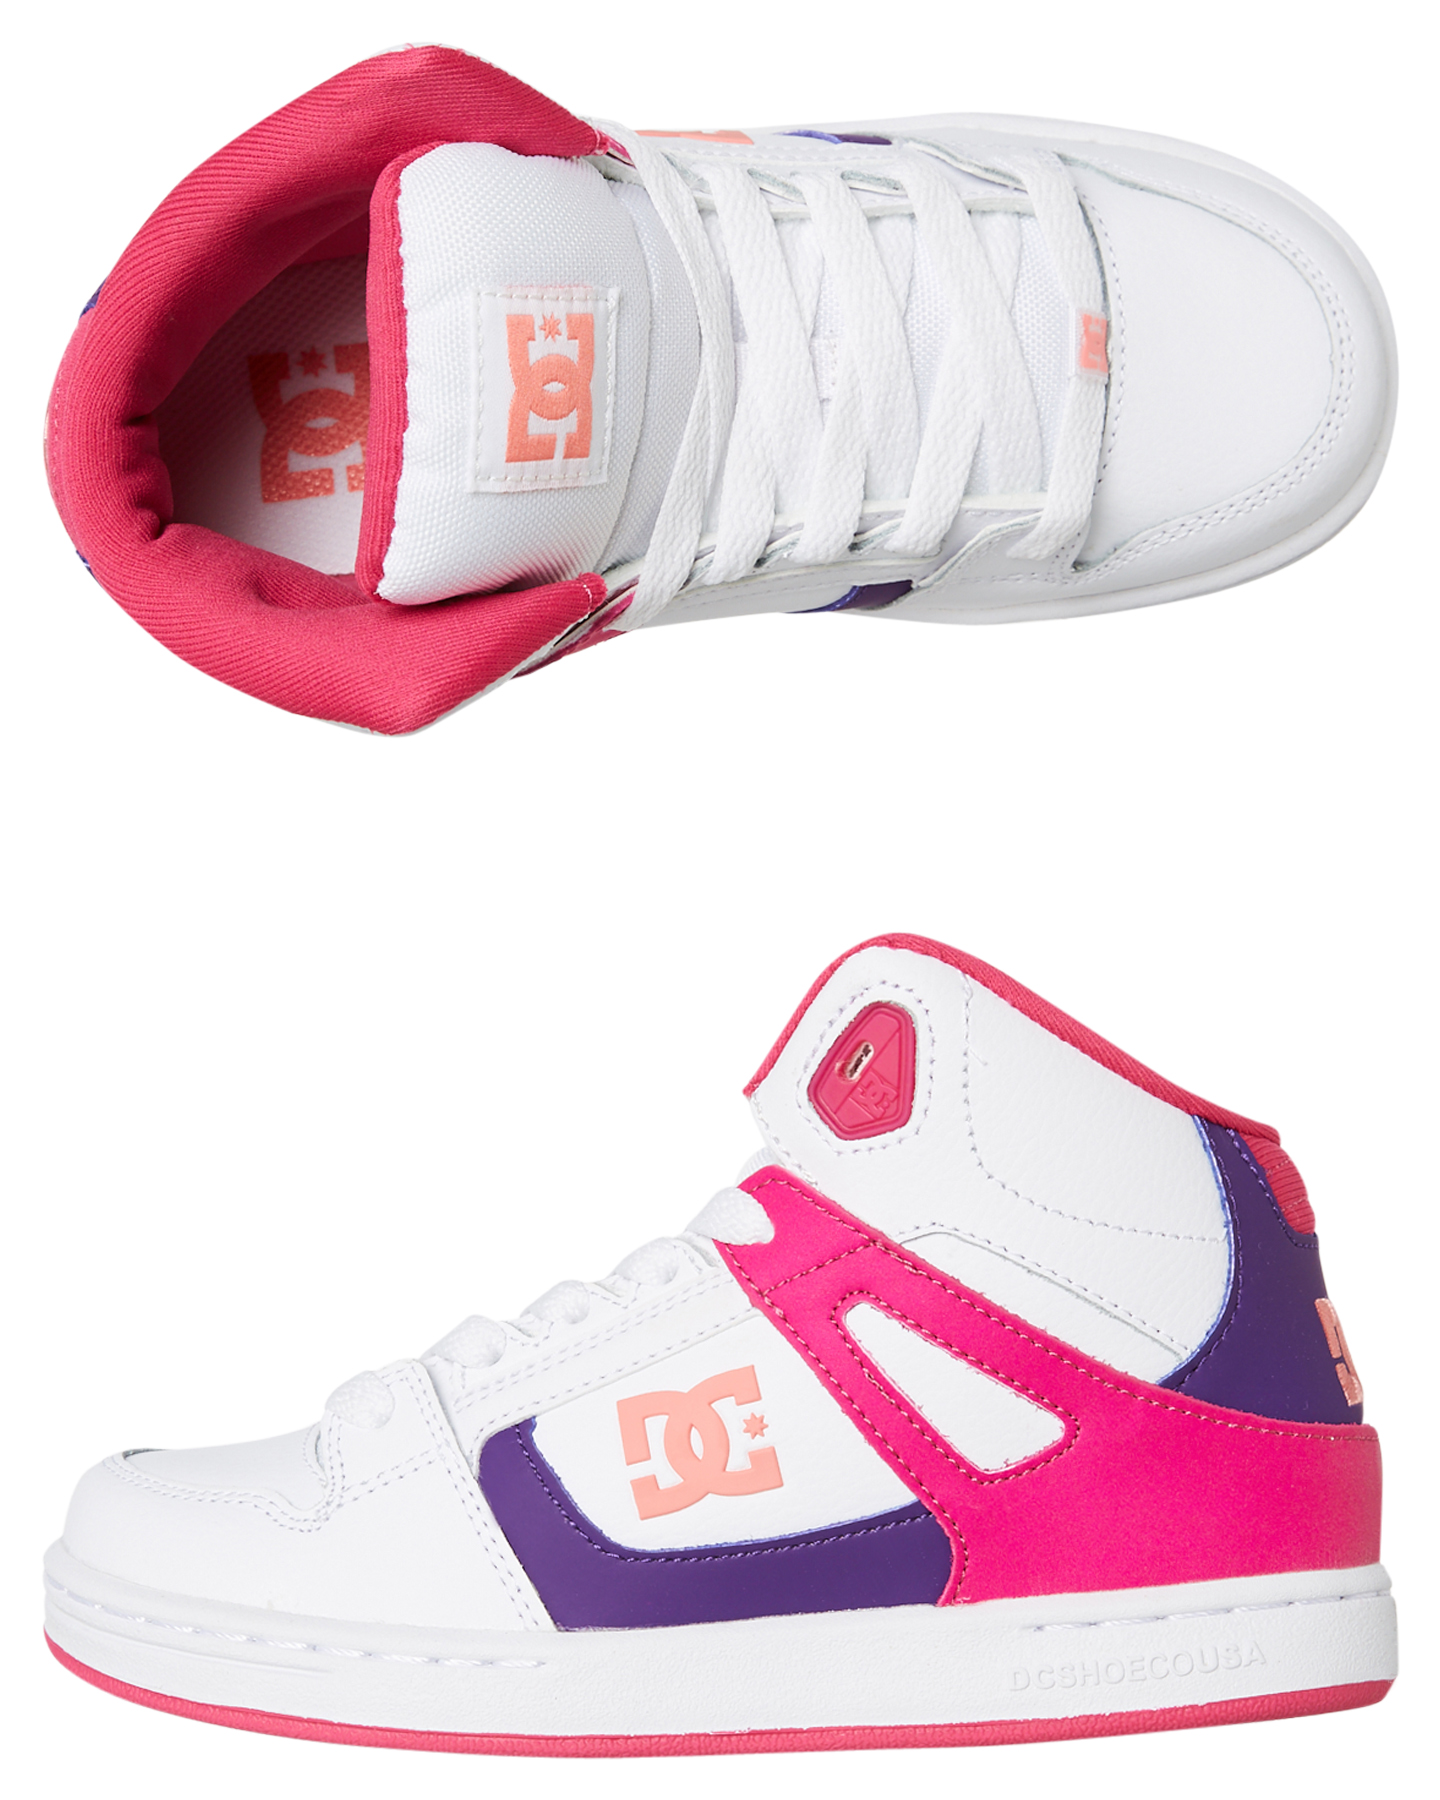 154c38a7f2 Dc Shoes Girls Pure Hi Top Shoe - White | SurfStitch